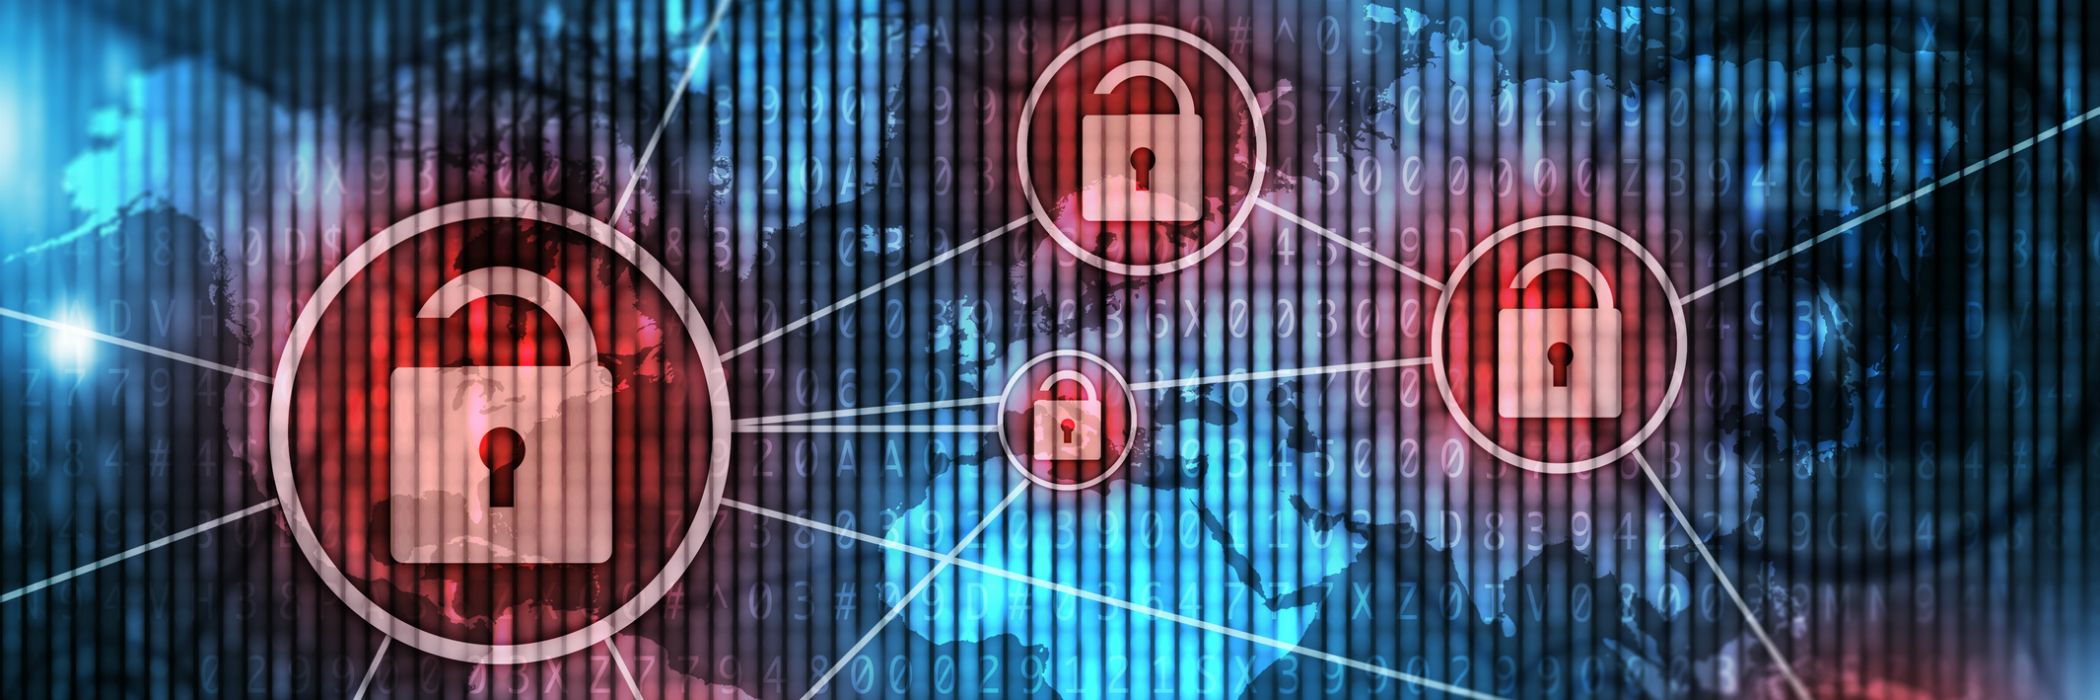 Different types of data protected with red padlocks